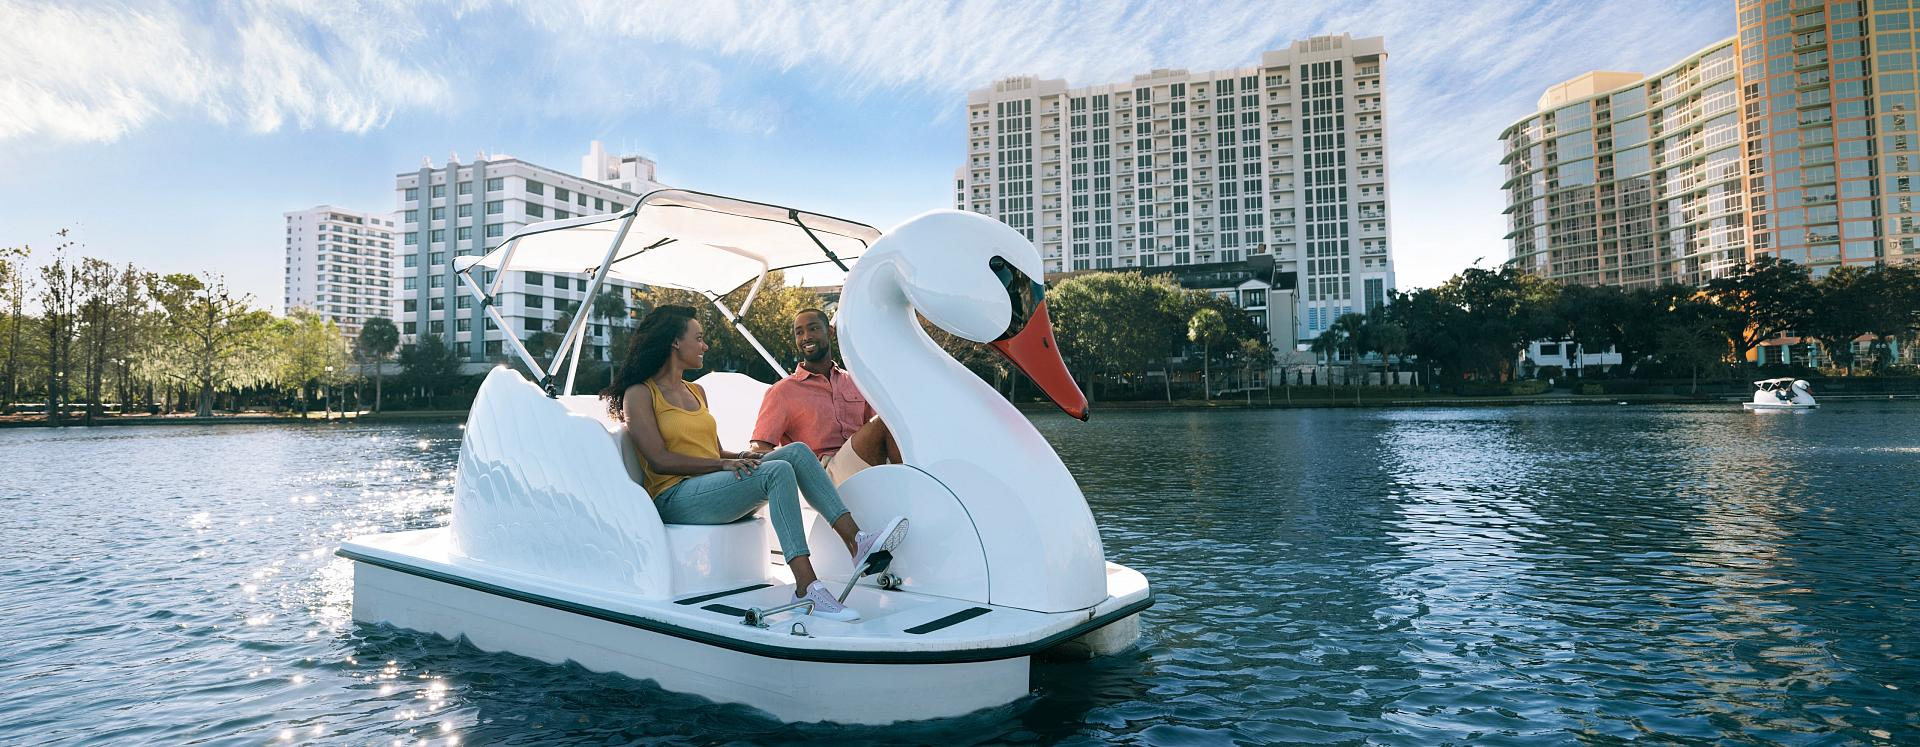 A couple enjoying the Lake Eola swan boats in Downtown Orlando